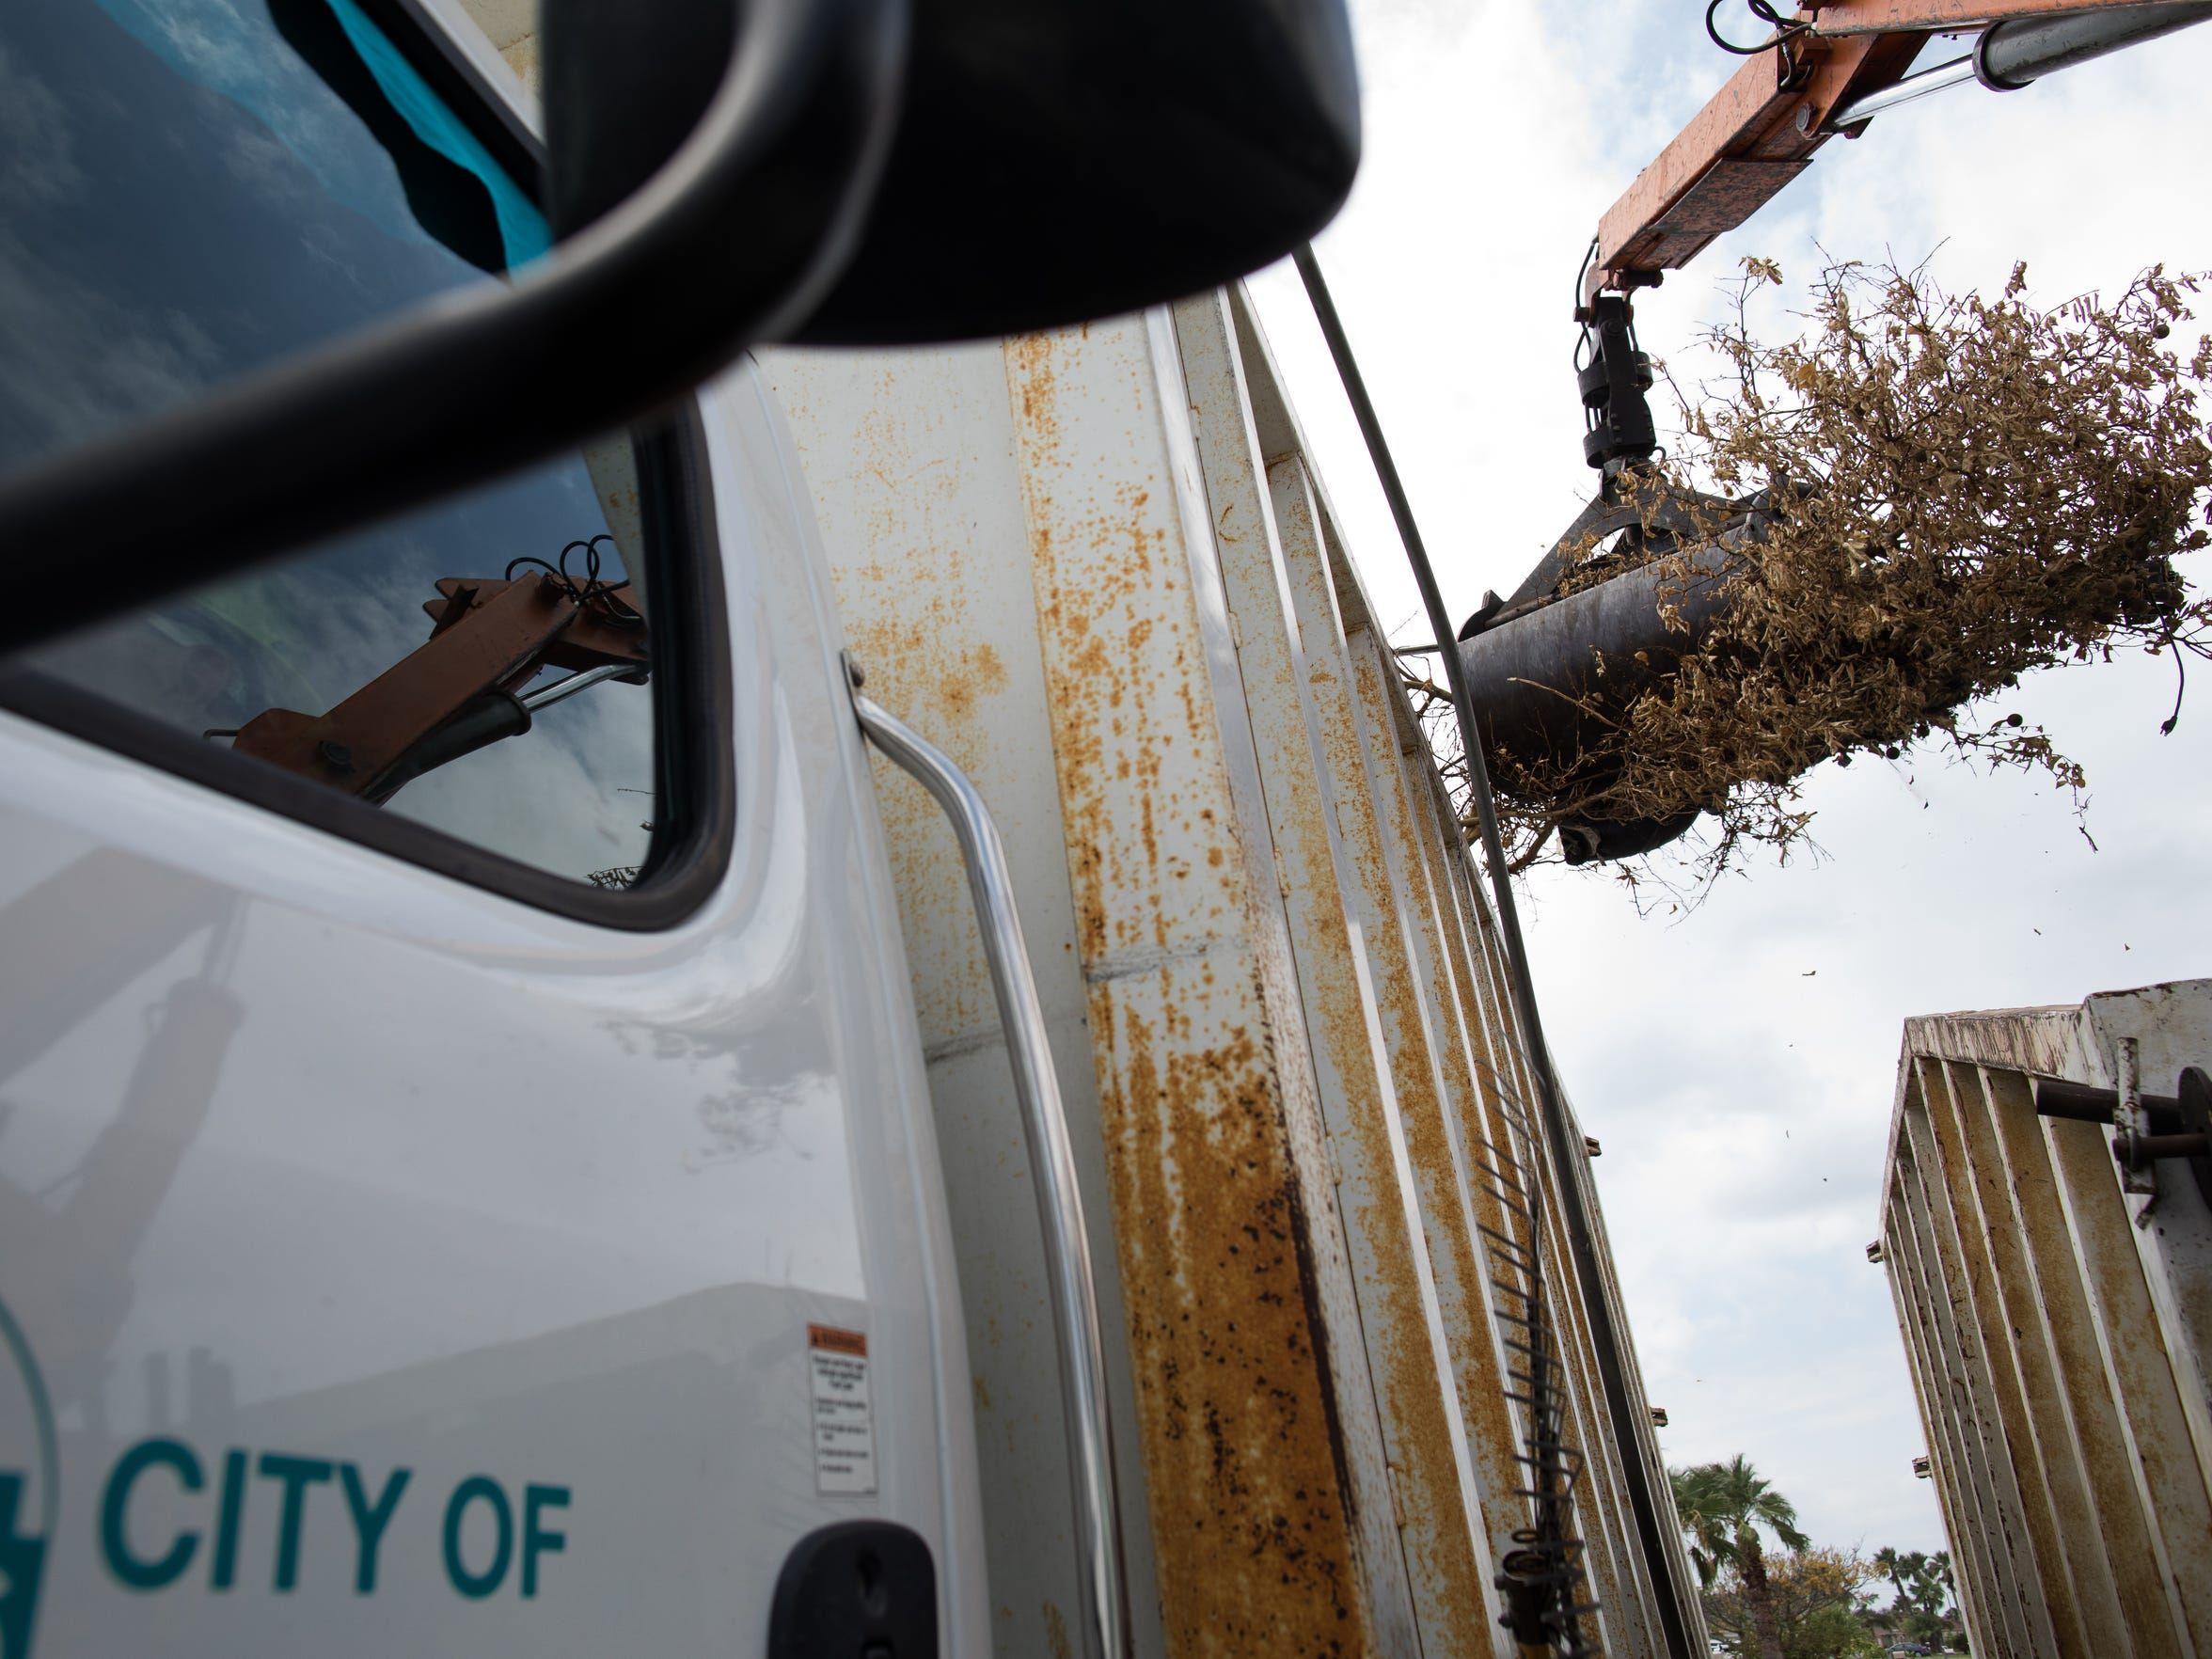 Debris from Hurricane Harvey is placed a city truck along Laffite Drive on Friday, Sept. 8, 2017.